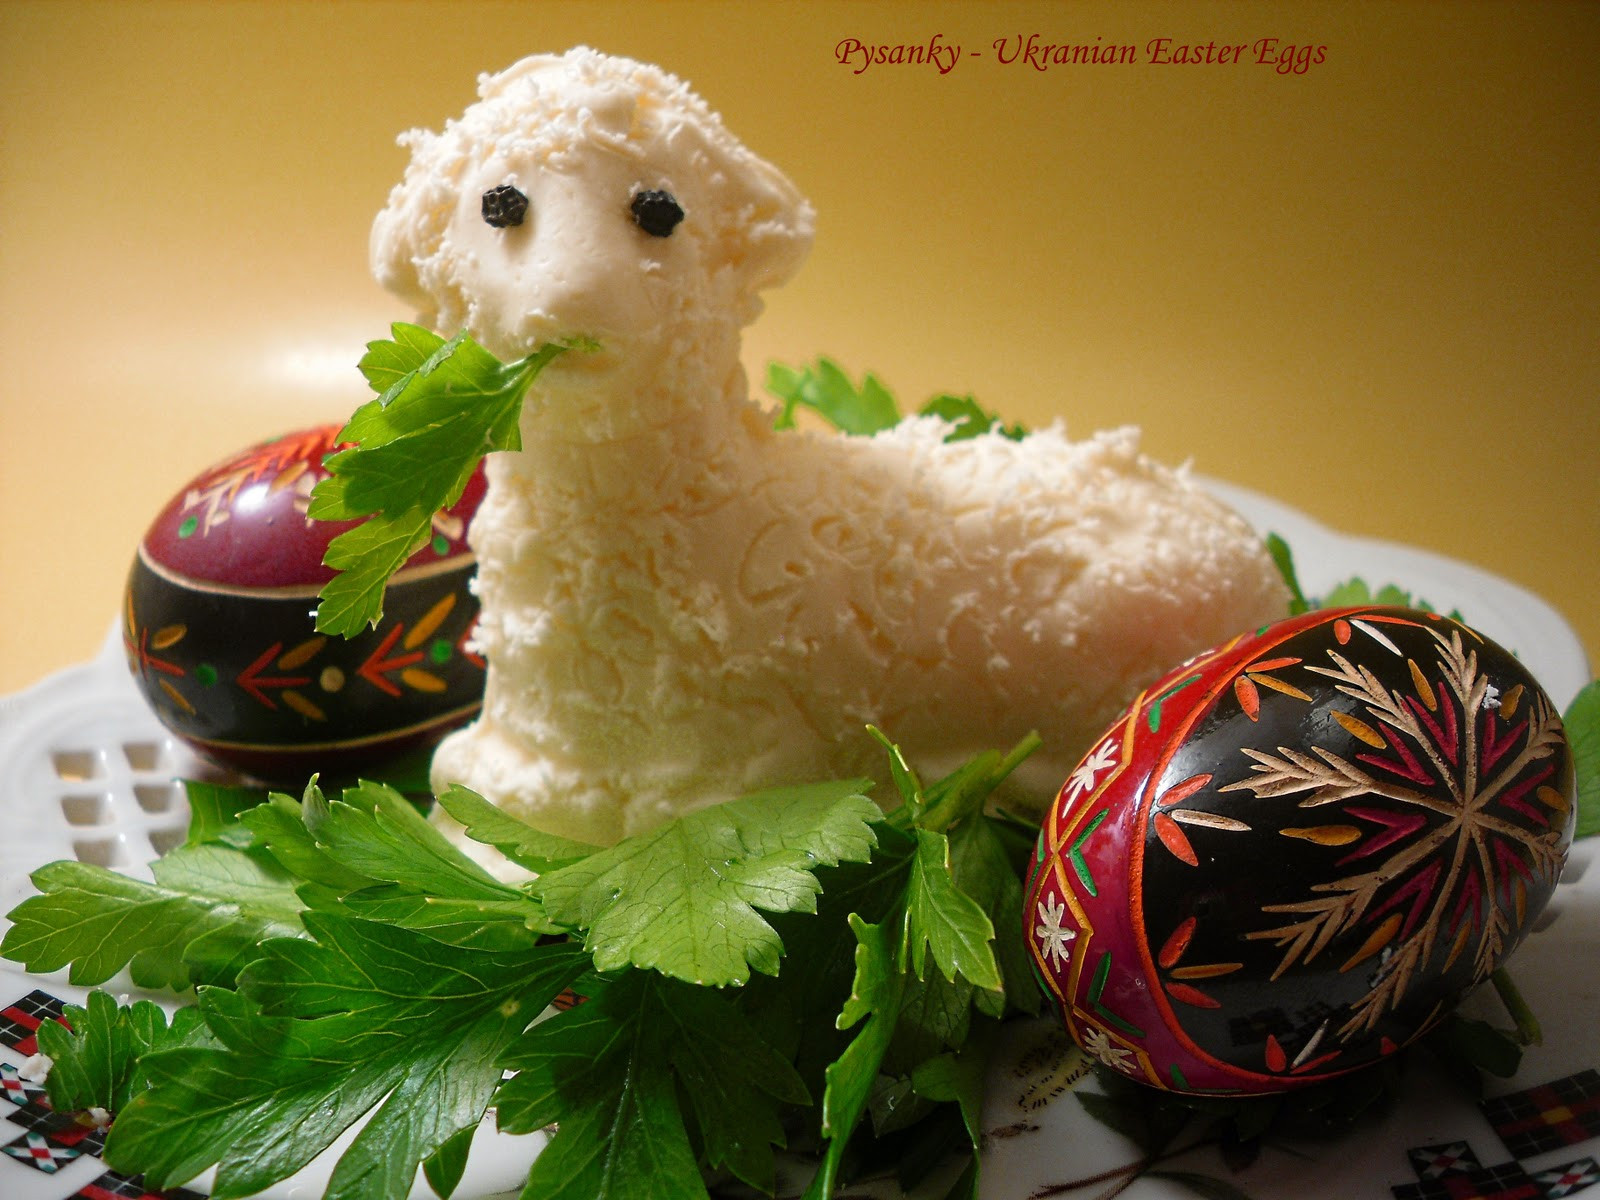 Lamb For Easter  fy Cuisine Home Recipes from Family & Friends Easter